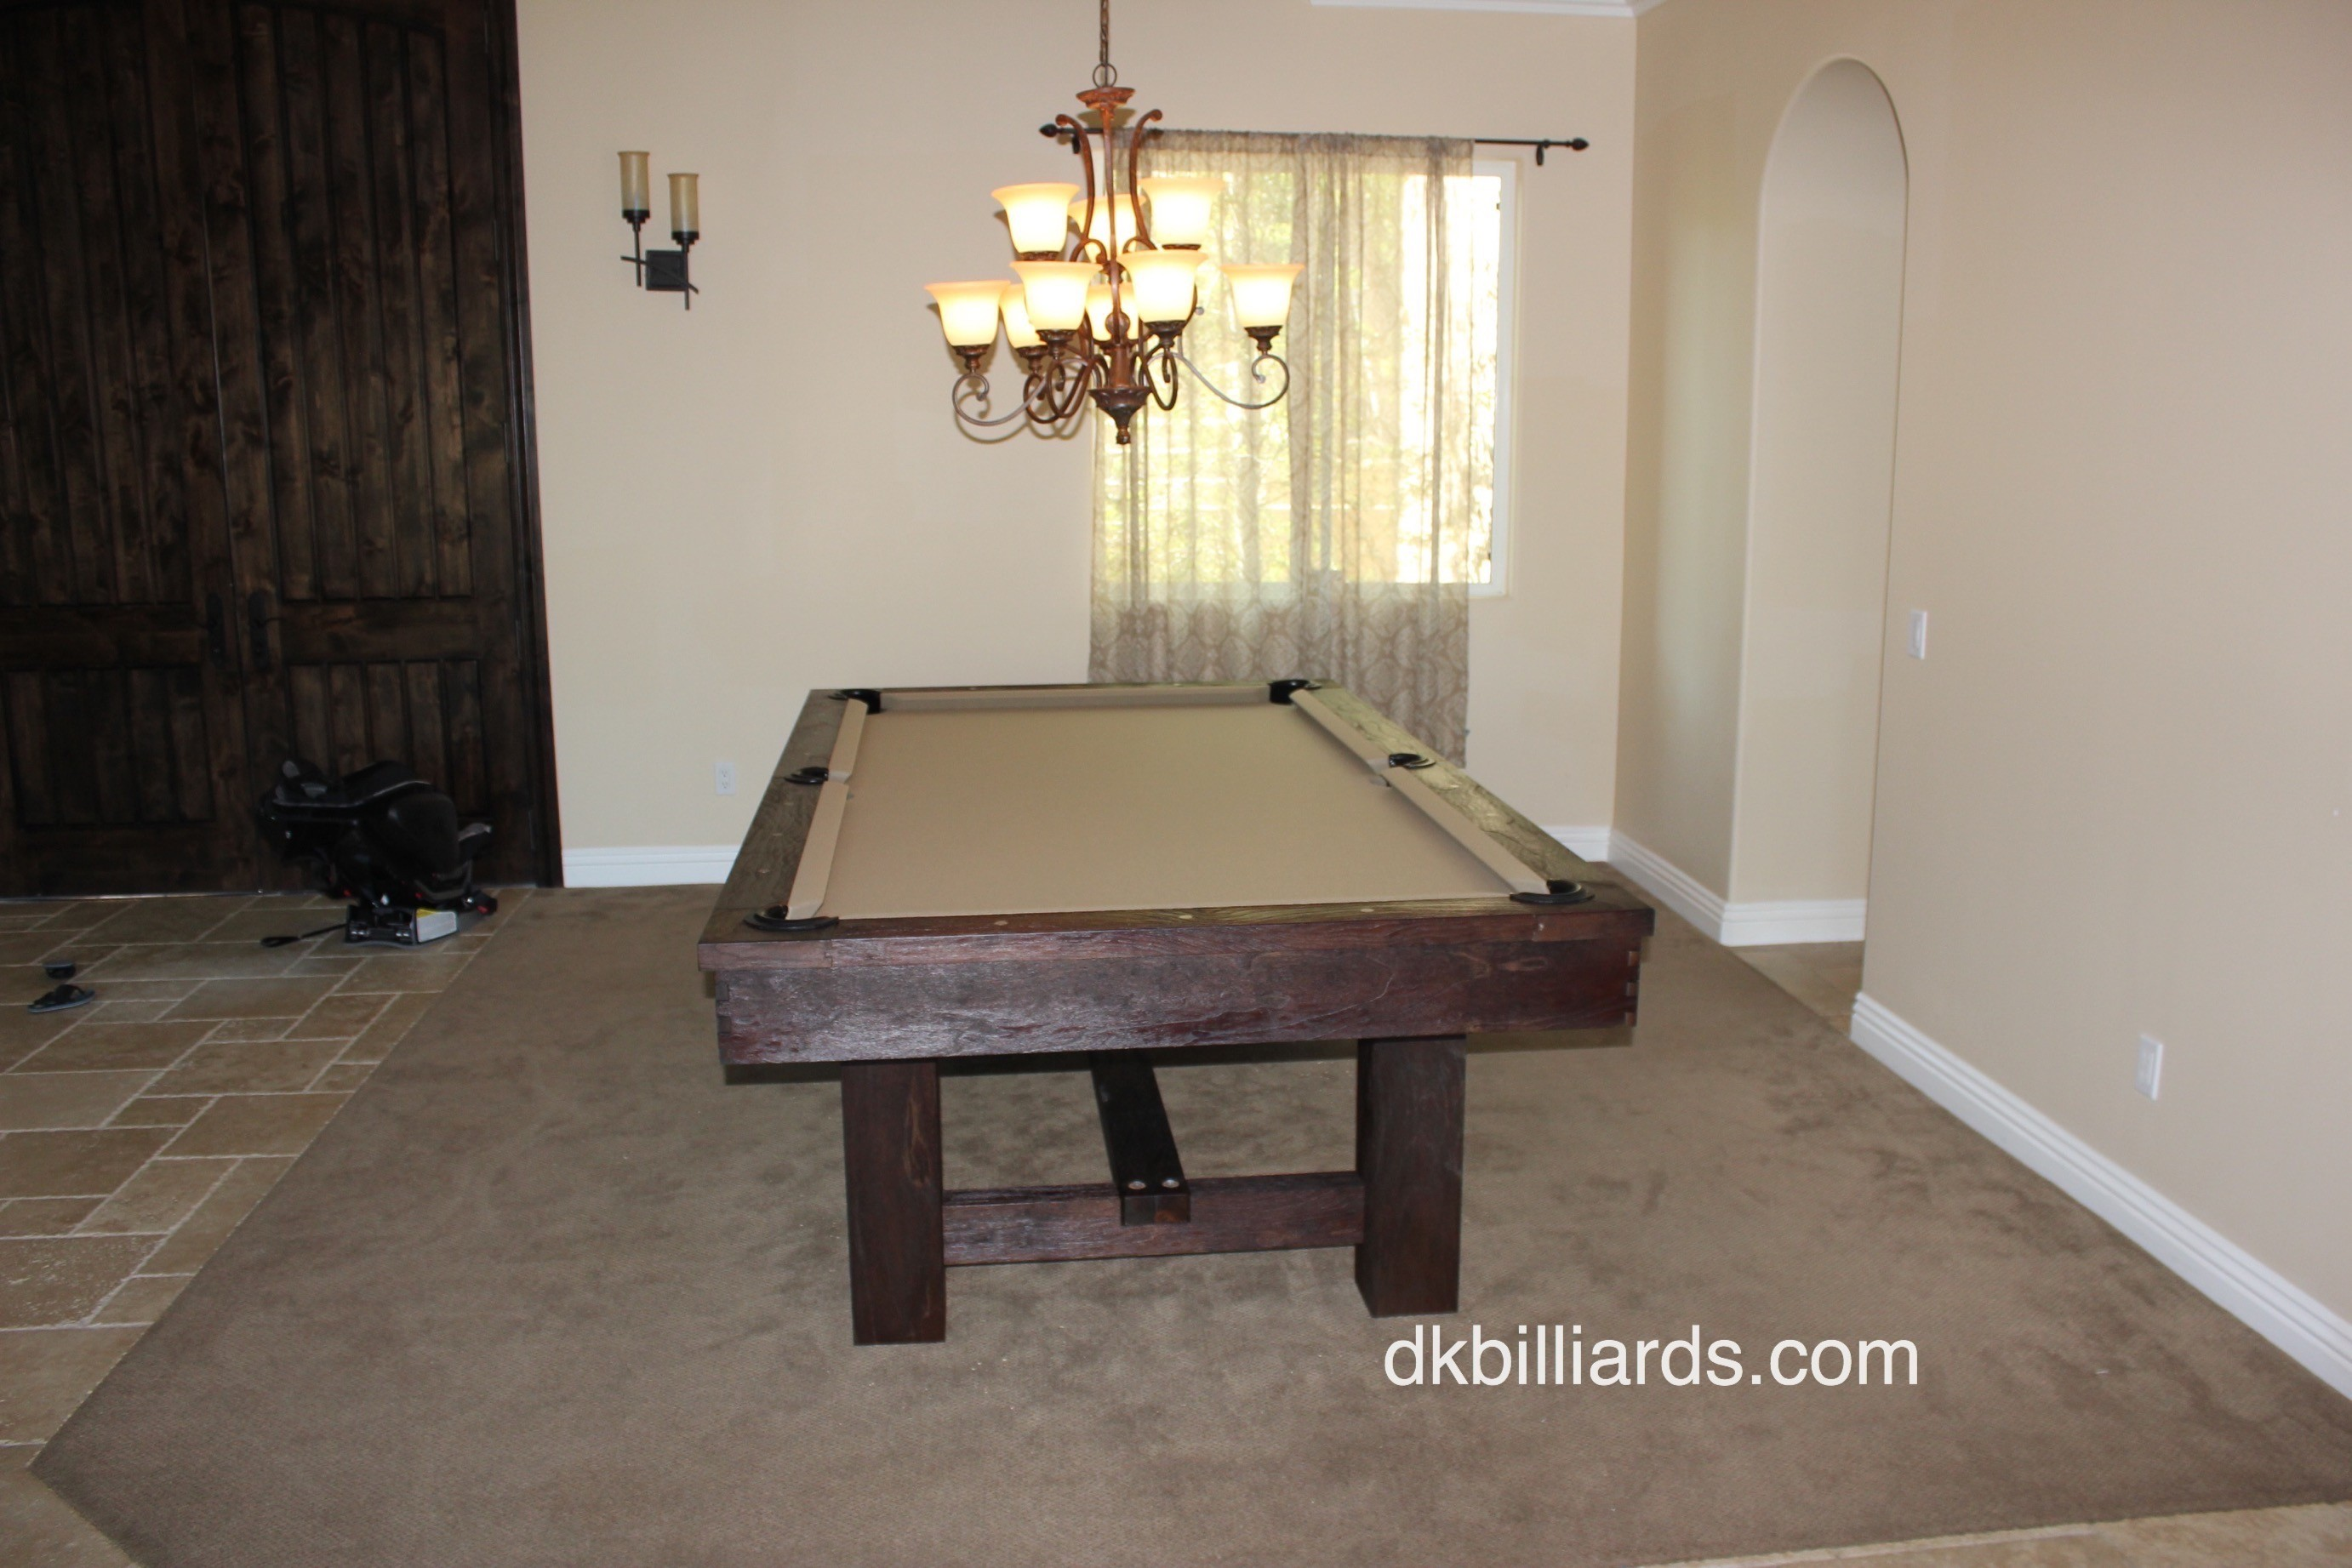 Rustic Pool Table in the Hills